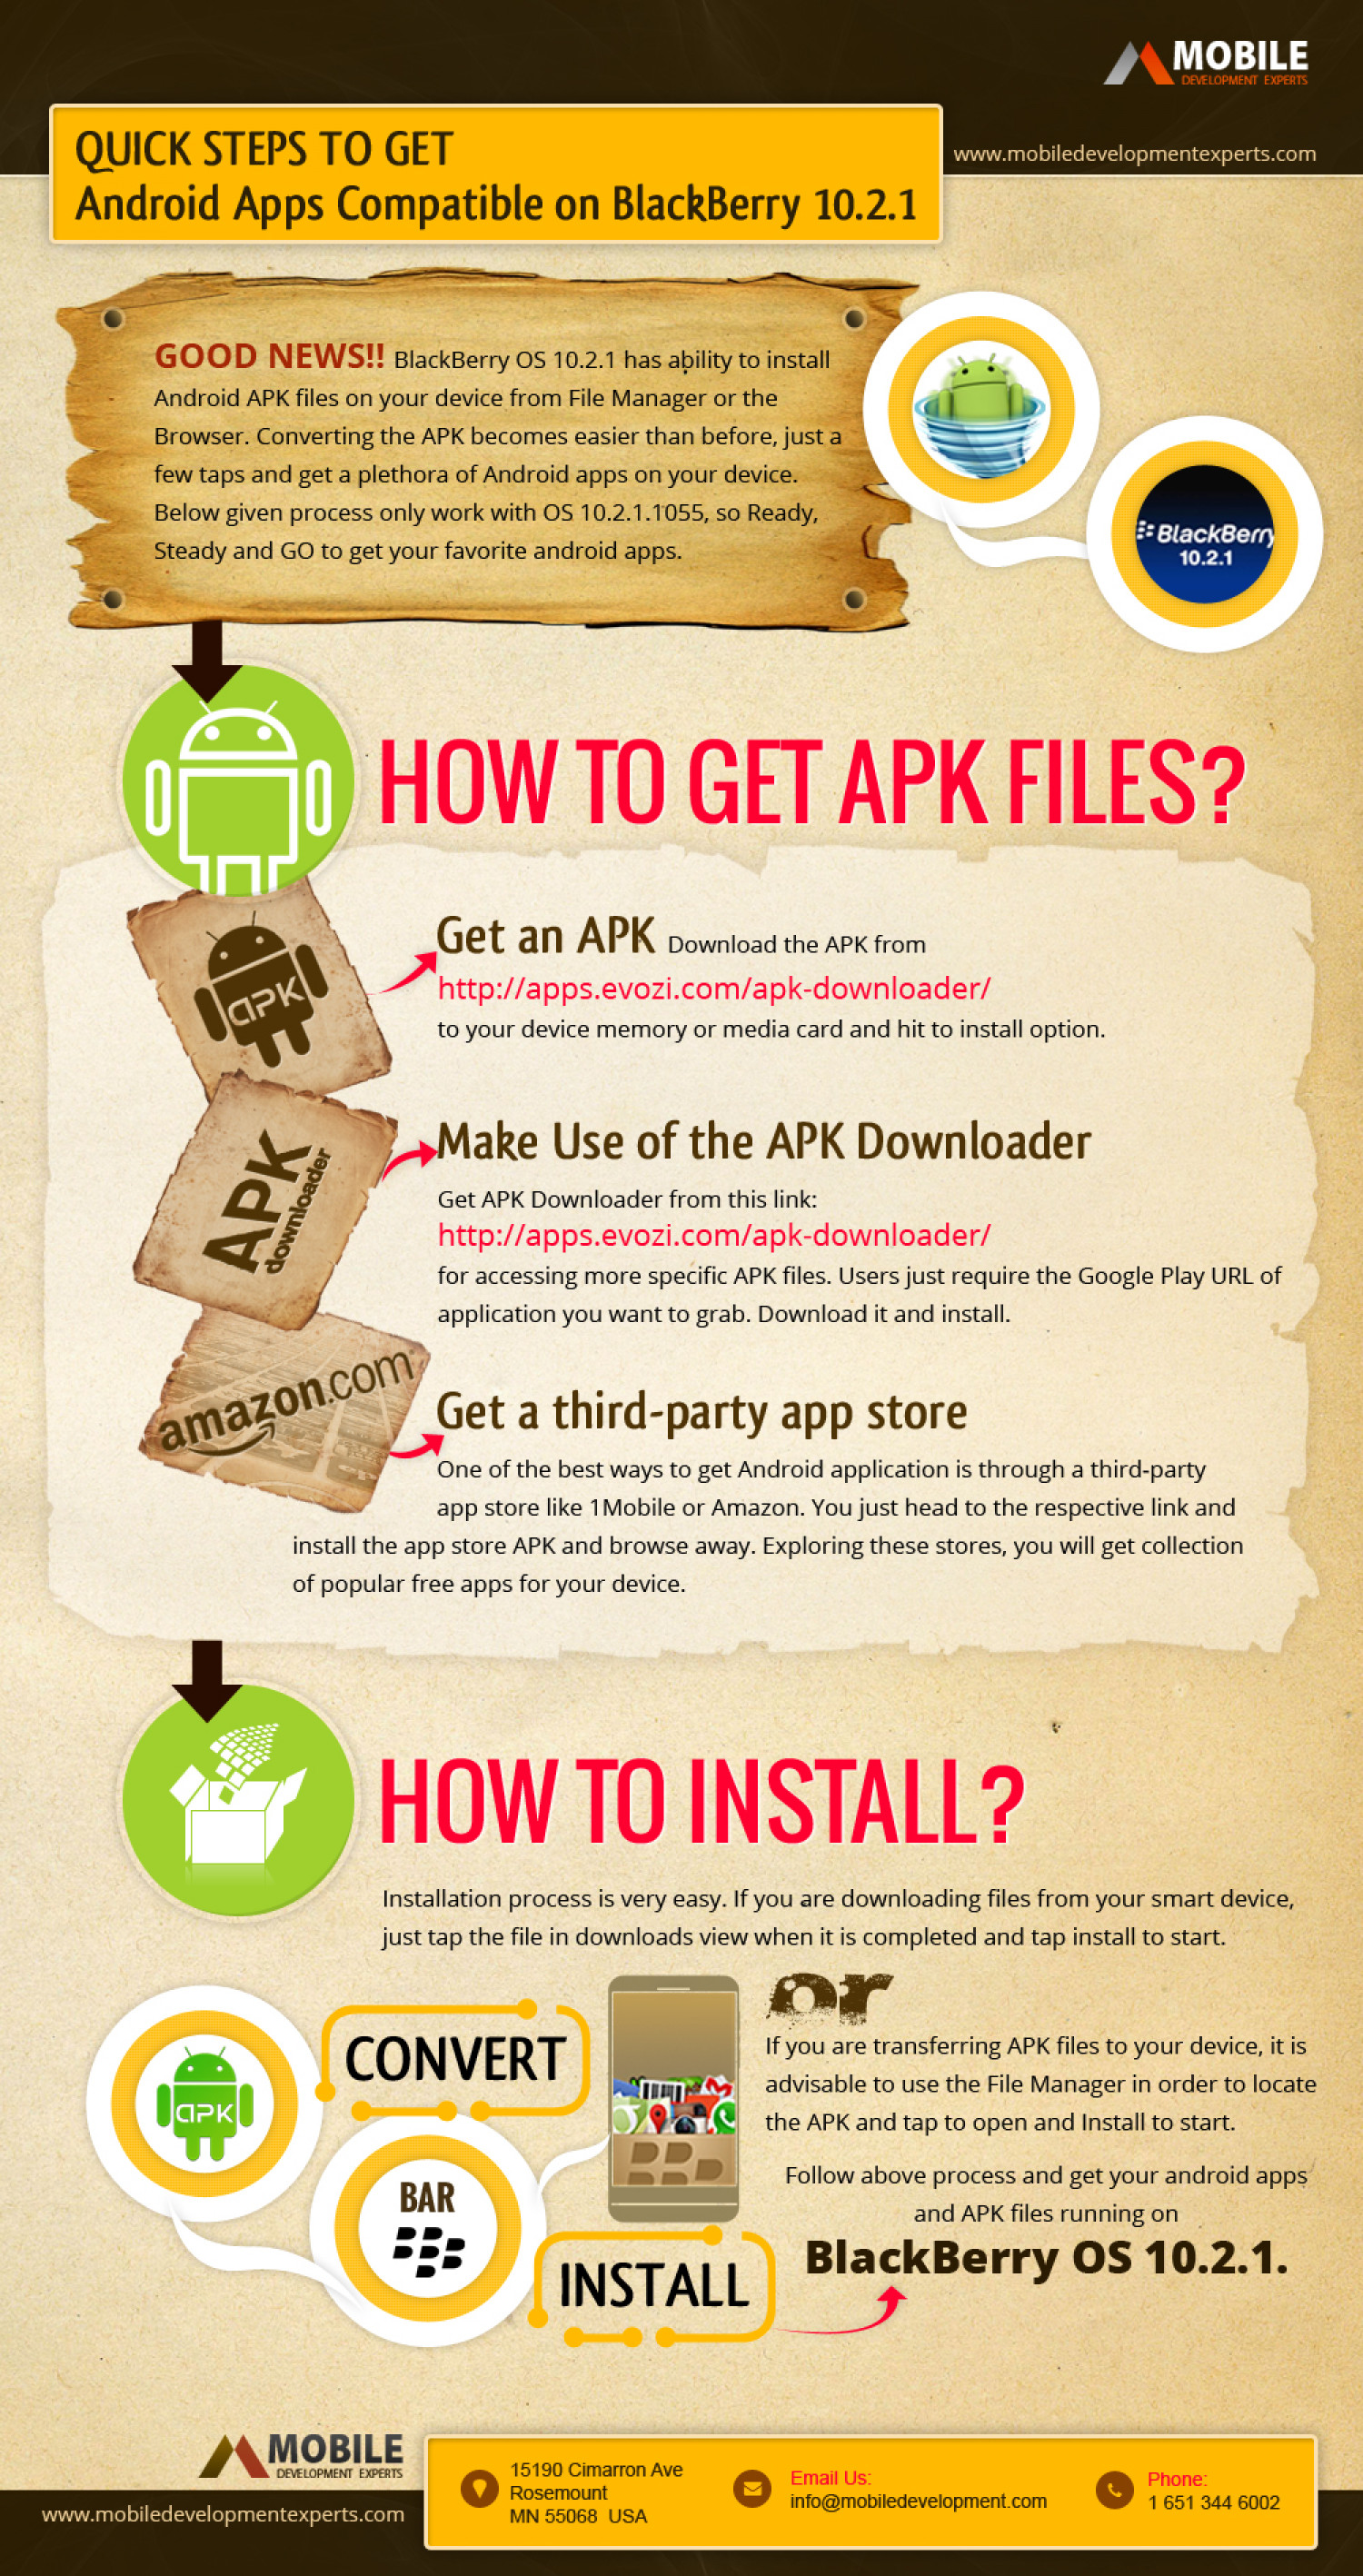 Quick Steps to Get Android Apps and APK files Compatible on BlackBerry OS 10.2.1 Infographic